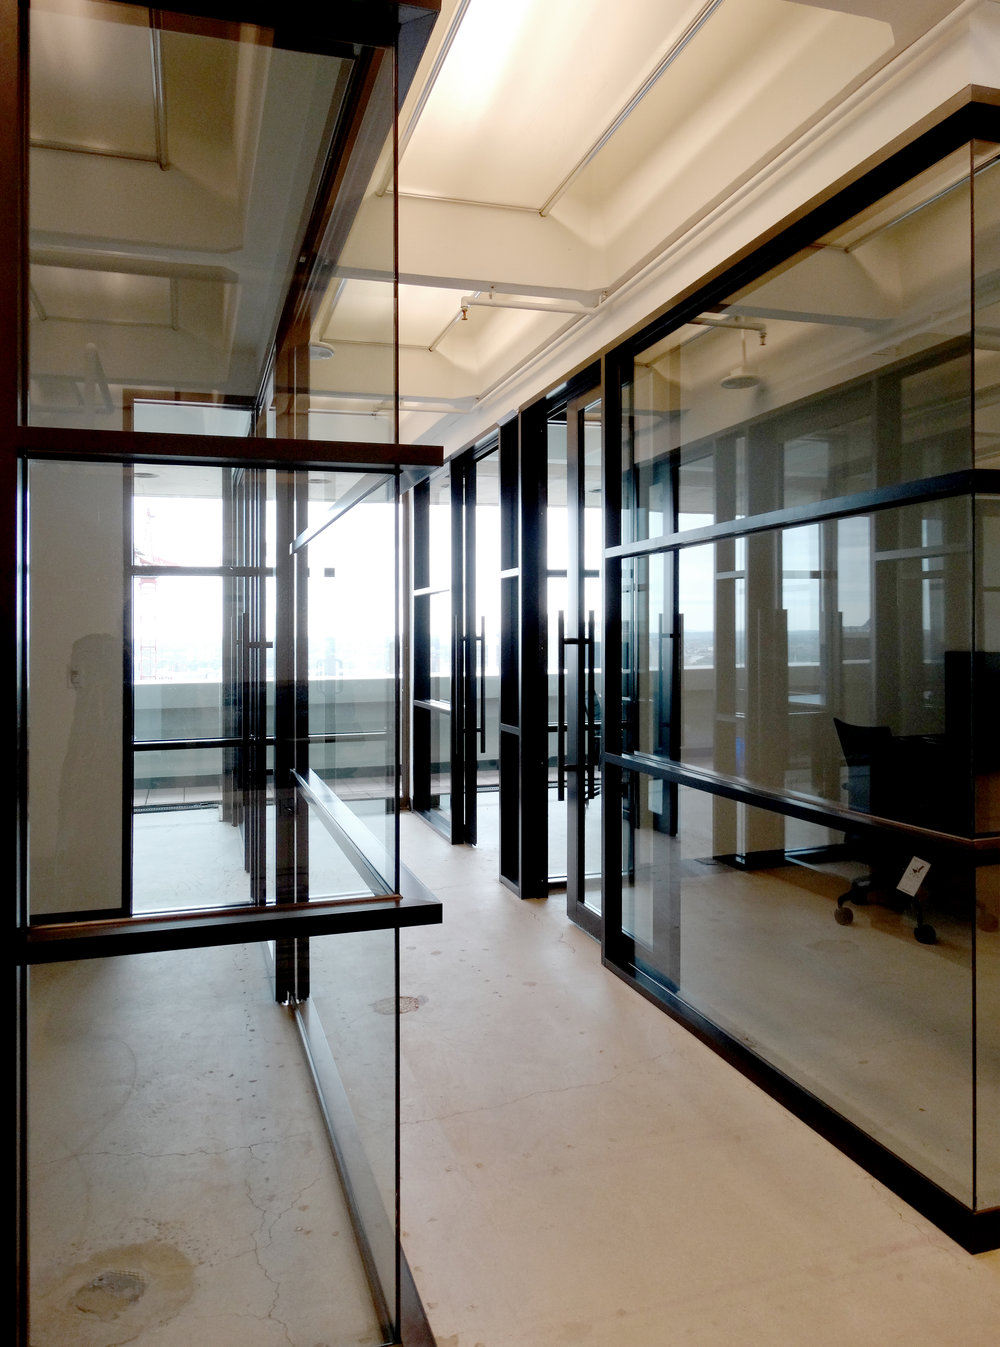 Encase Black Aluminum Horizontal Mullion Glass Wall - Spaceworks AI.JPG